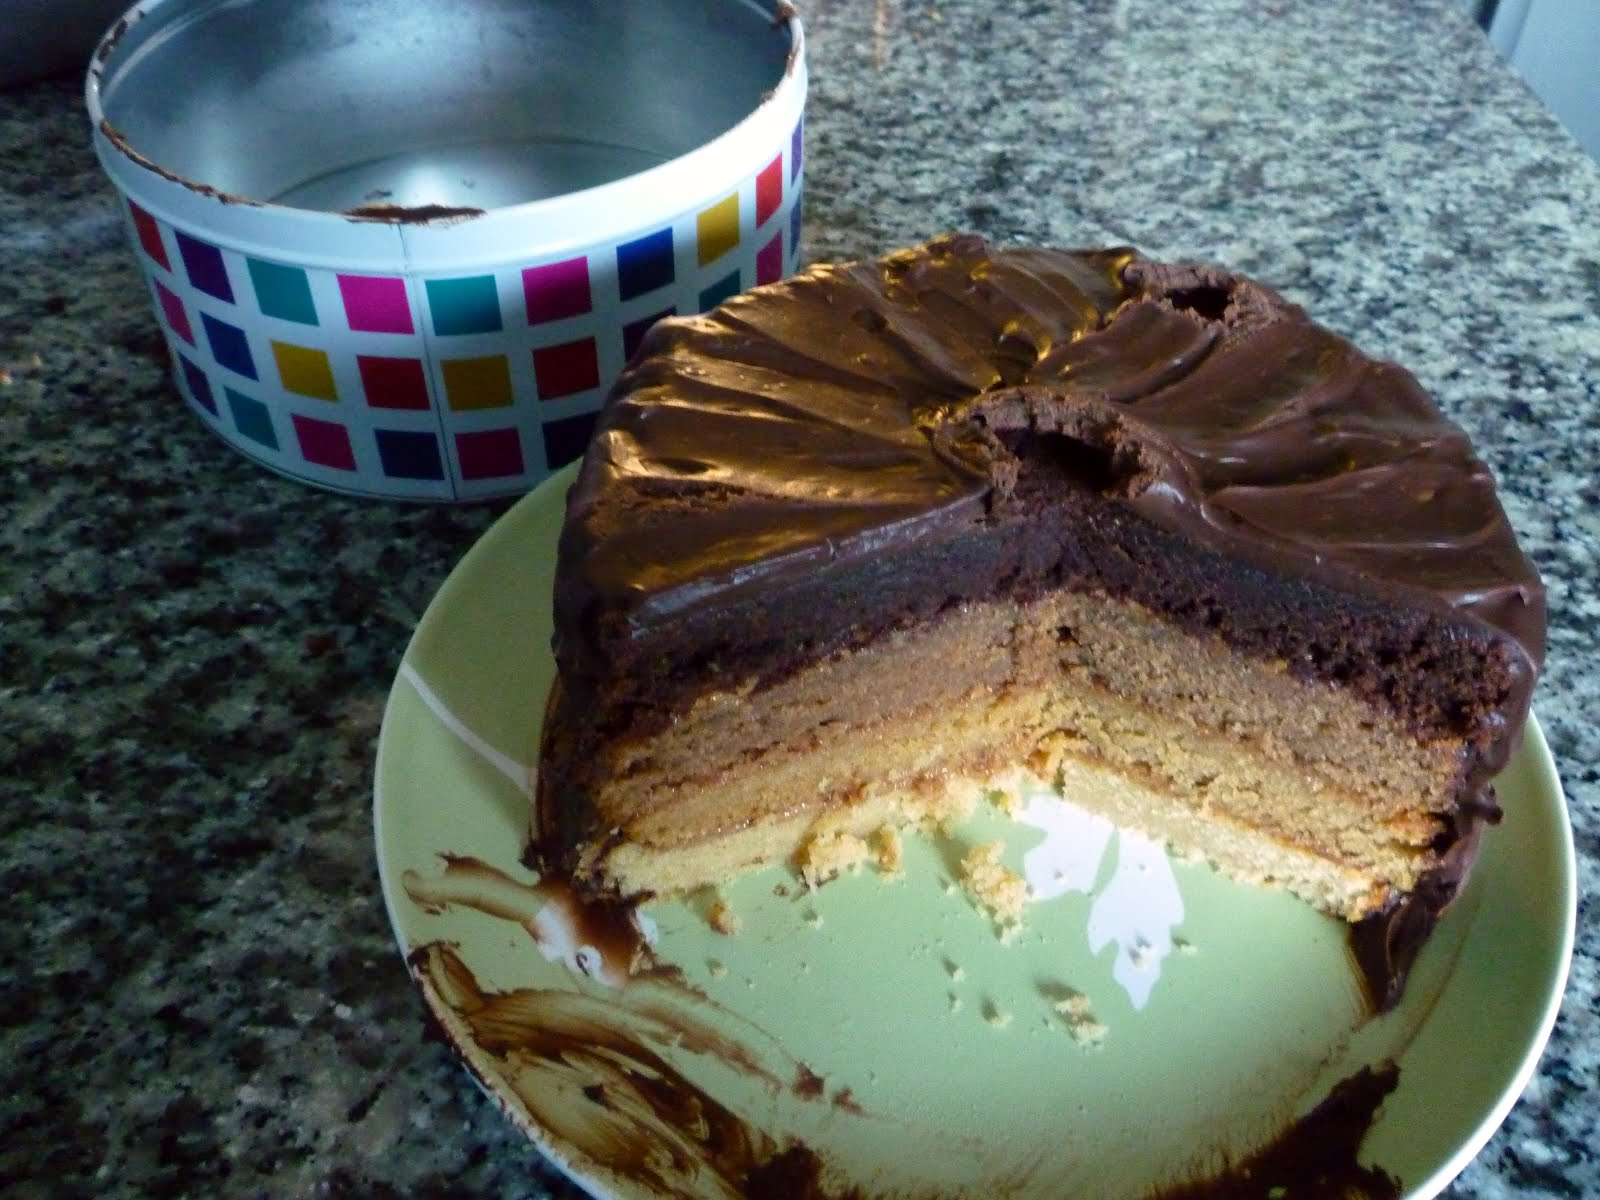 Can You Stack Cake Without Icing Between Layers